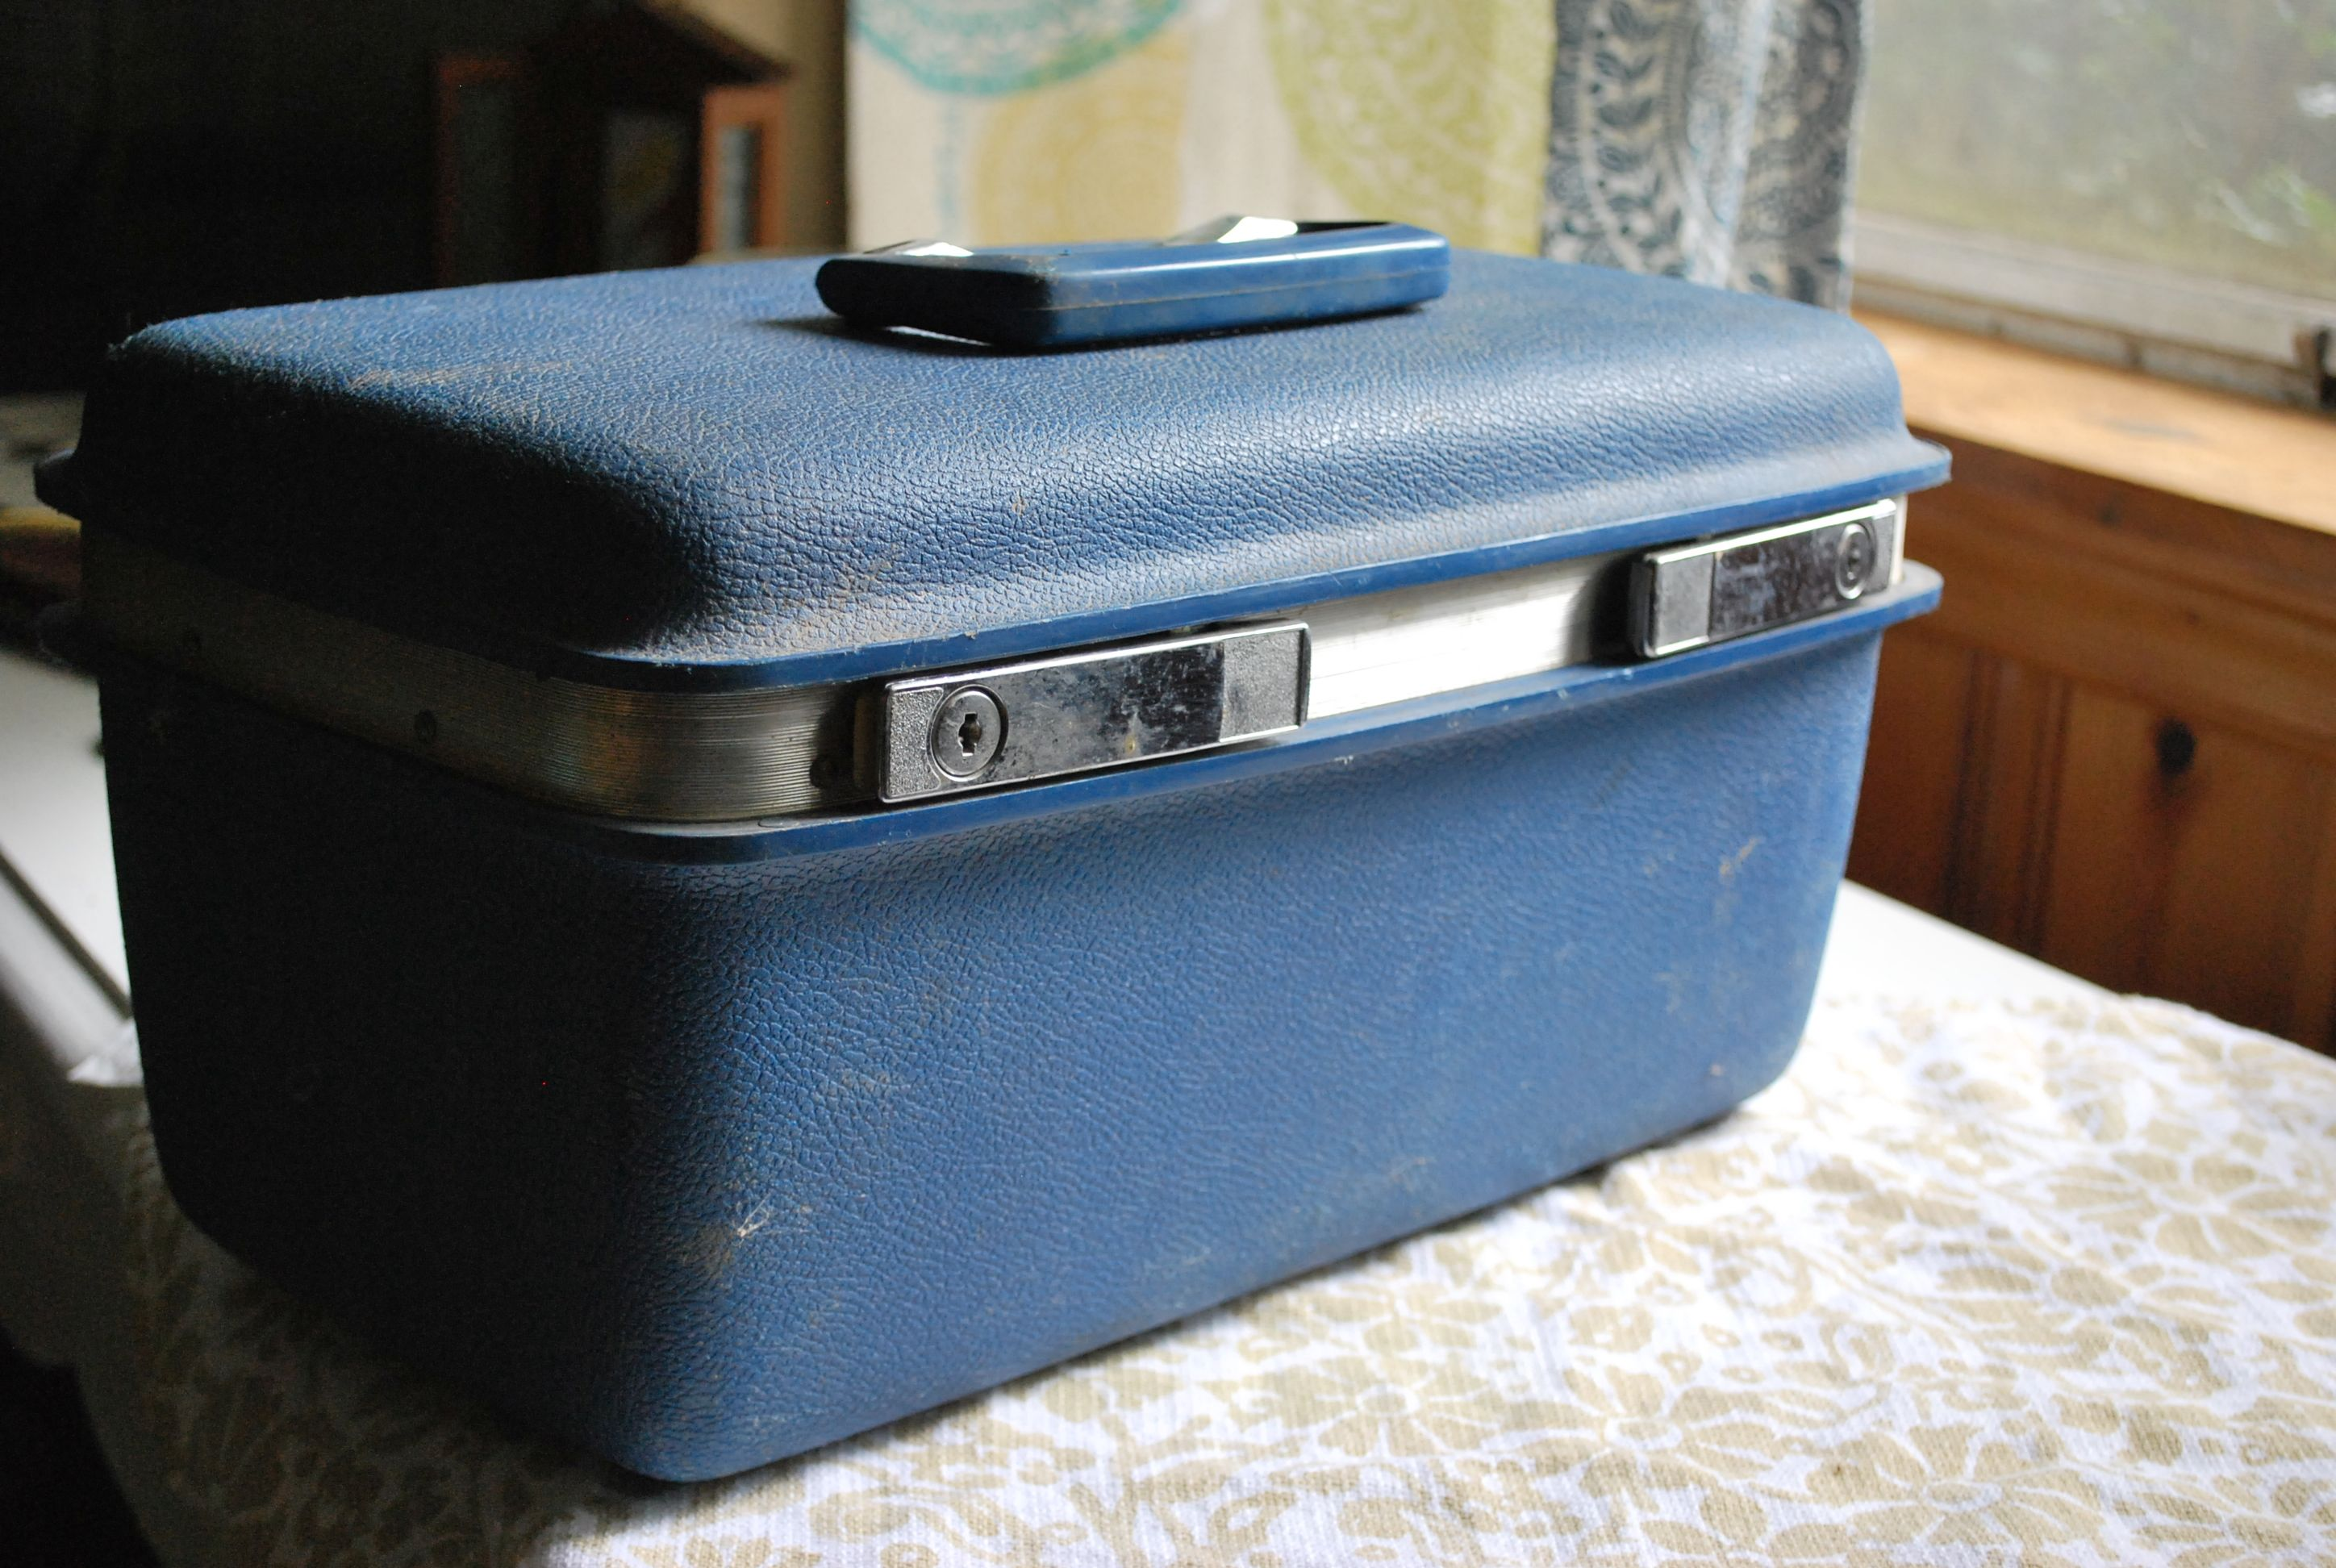 Vintage luggage that will become an herbal first aid kit